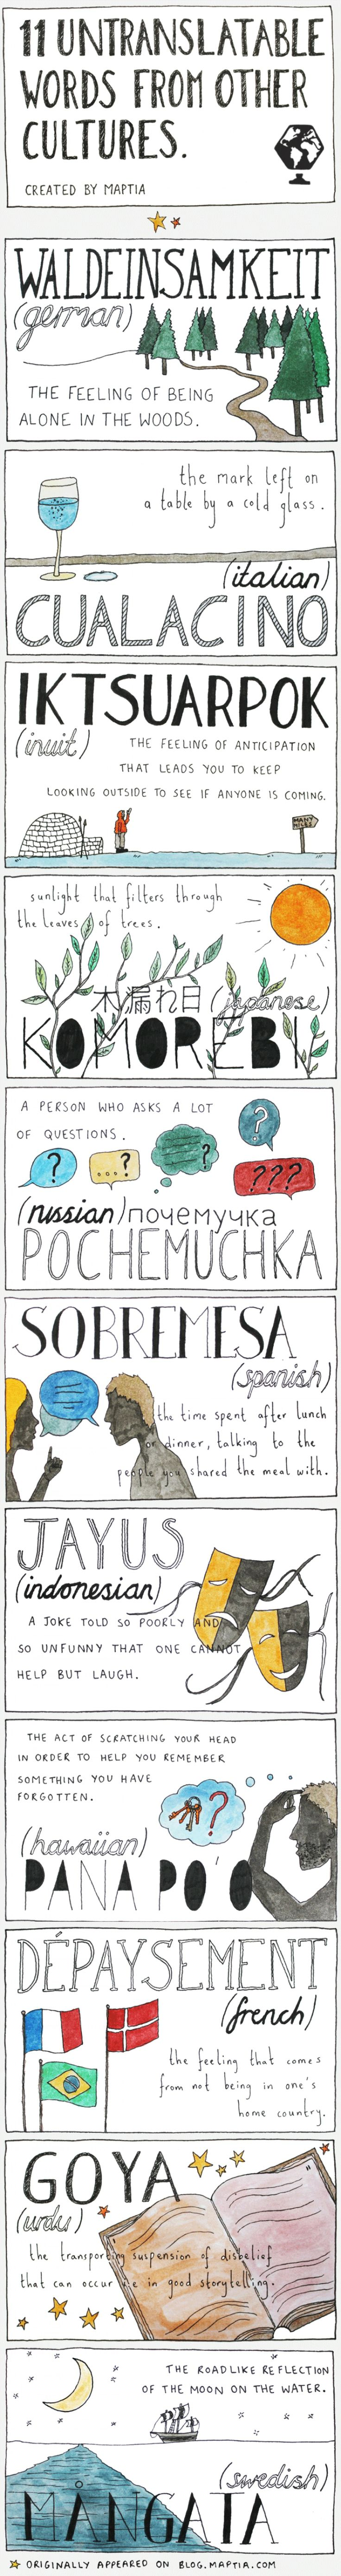 """""""untranslatable"""" words... some could make good tattoos, others are kinda amusing.."""